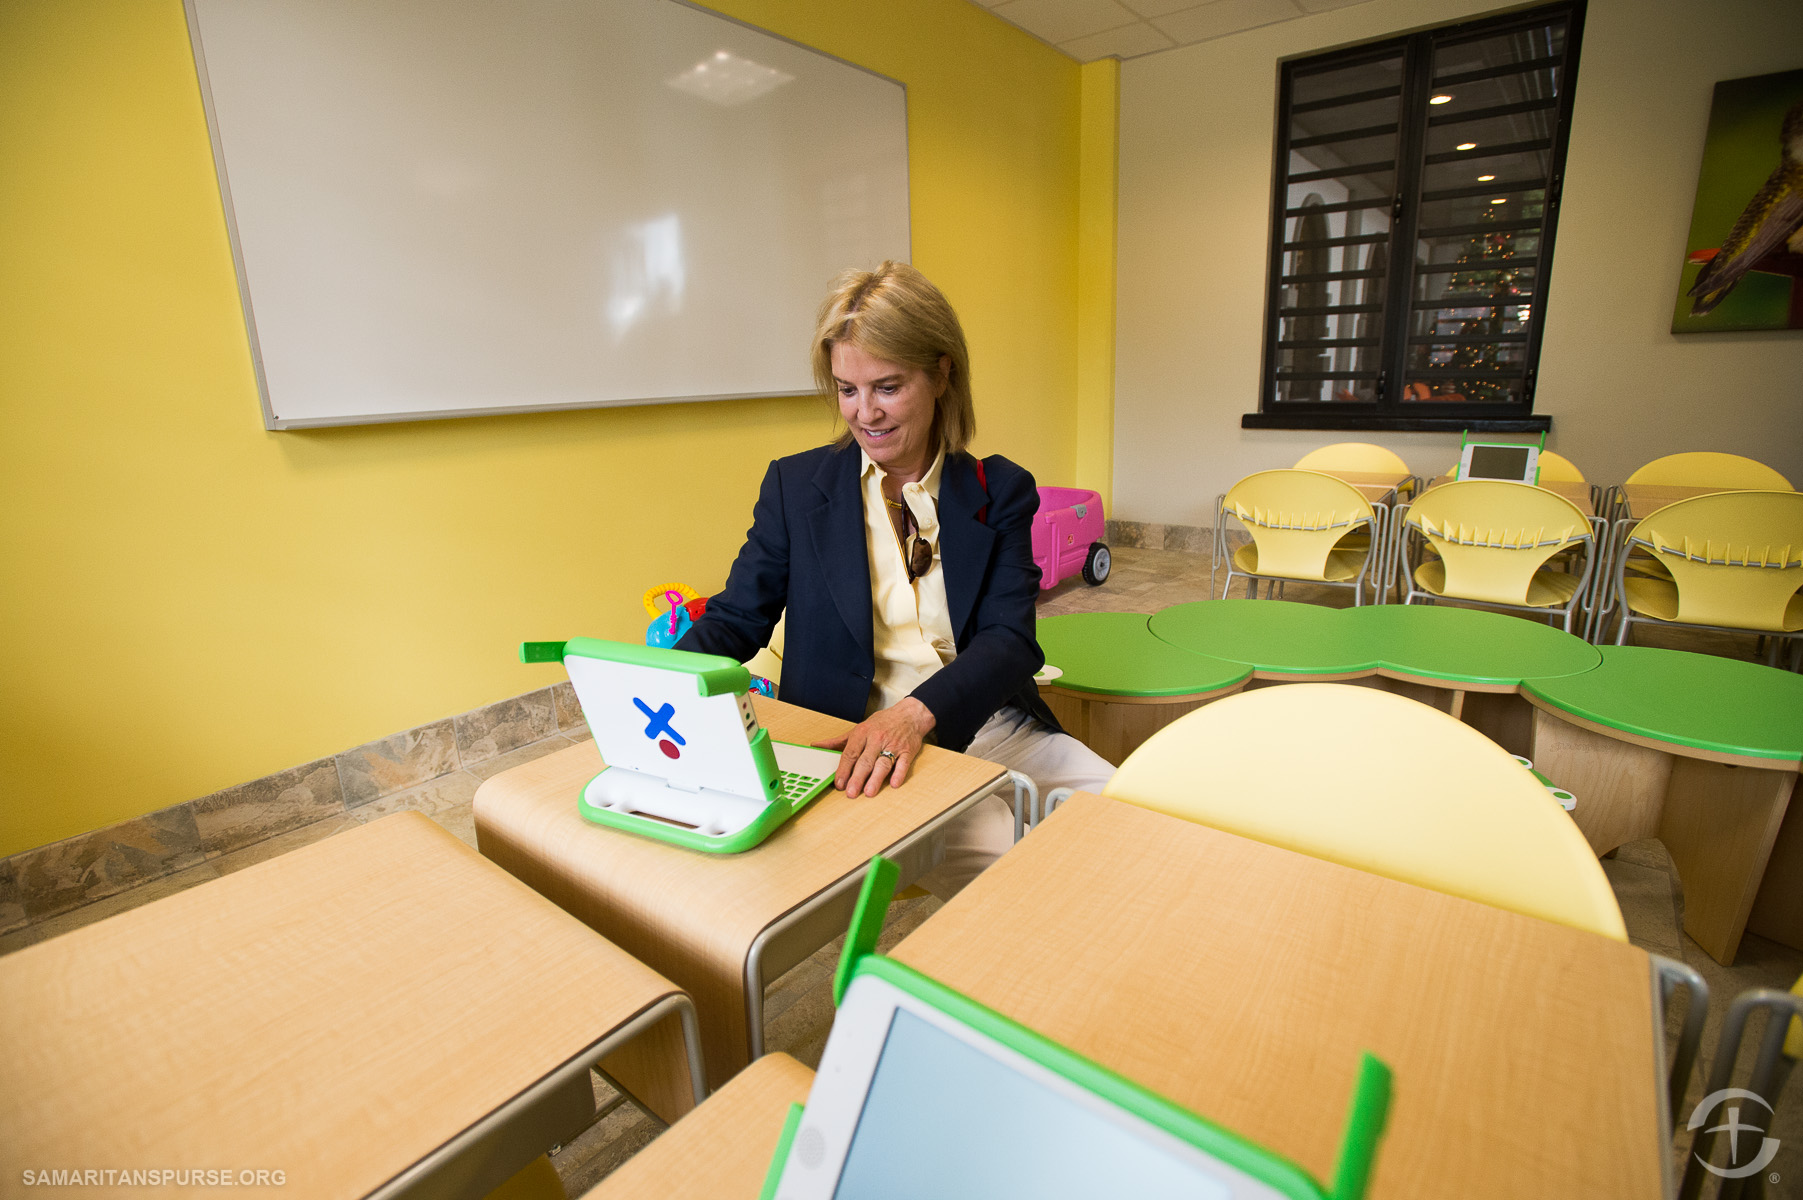 Greta Van Susteren tries out one of the 100 XO laptops, specifically designed for educating children in developing countries.